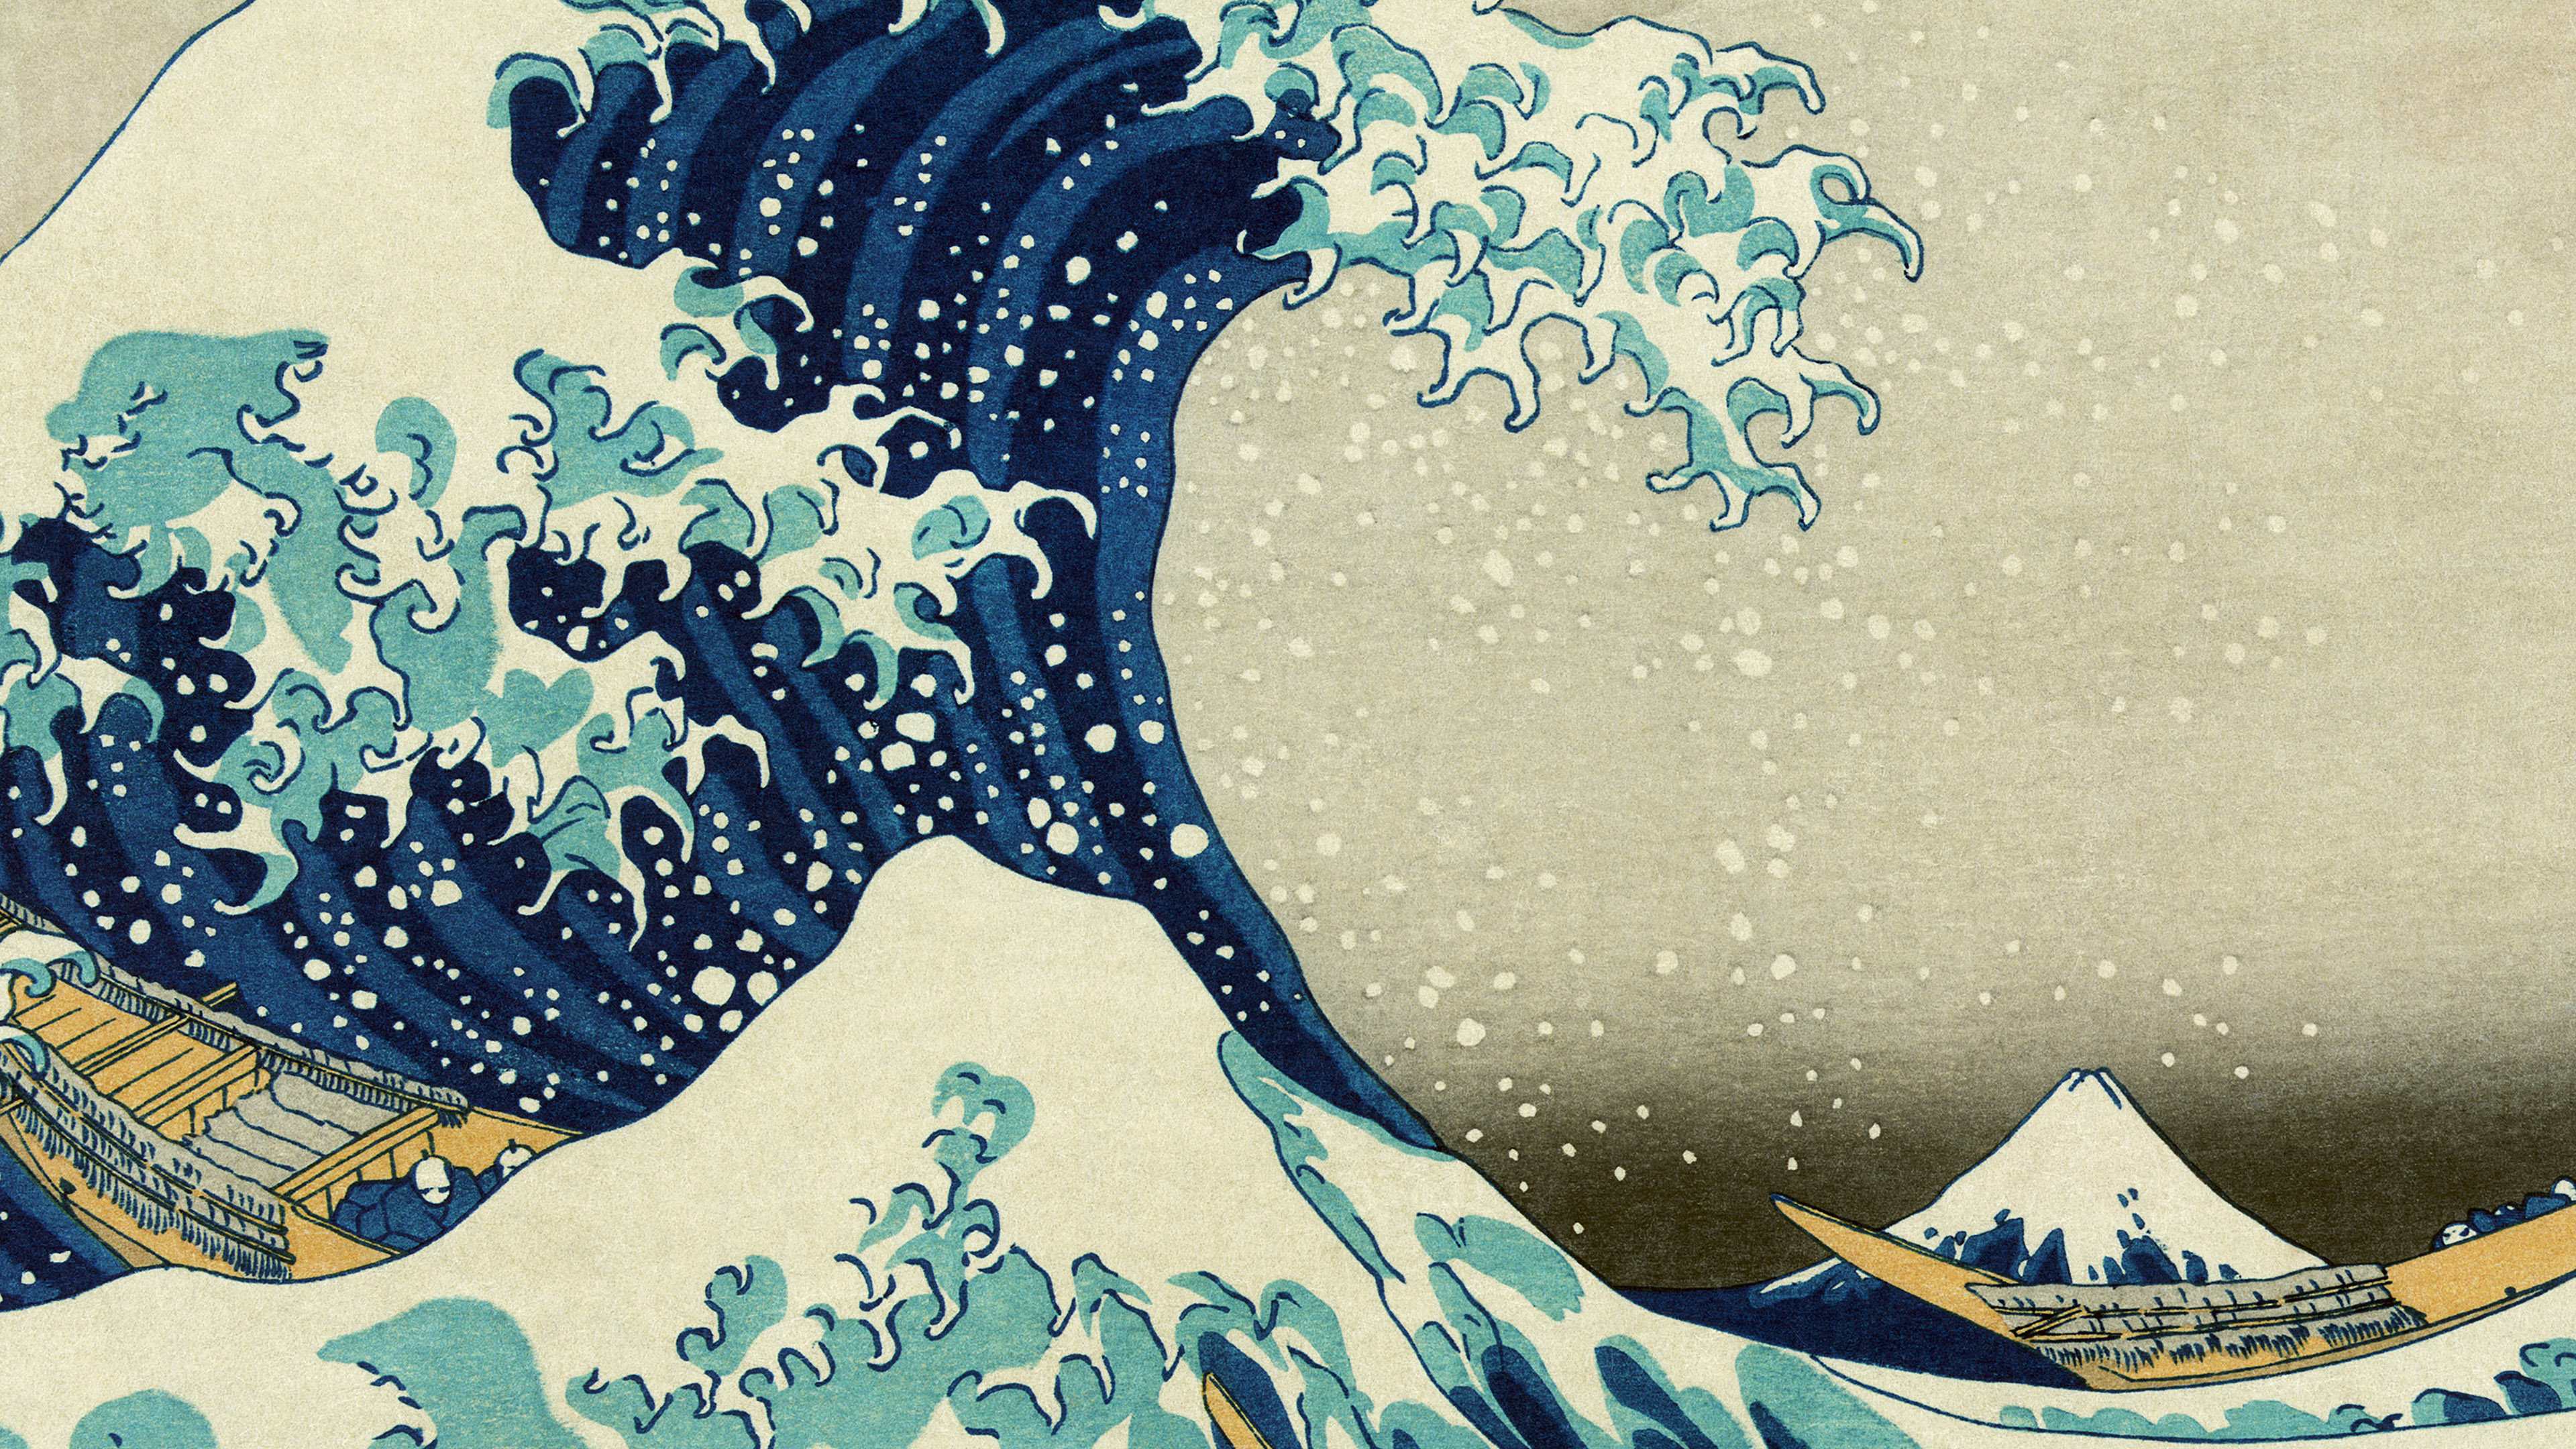 The Great Wave Off Kanagawa Iphone Wallpaper Ab75 Wallpaper Great Wave Off Kanagawa Wallpaper